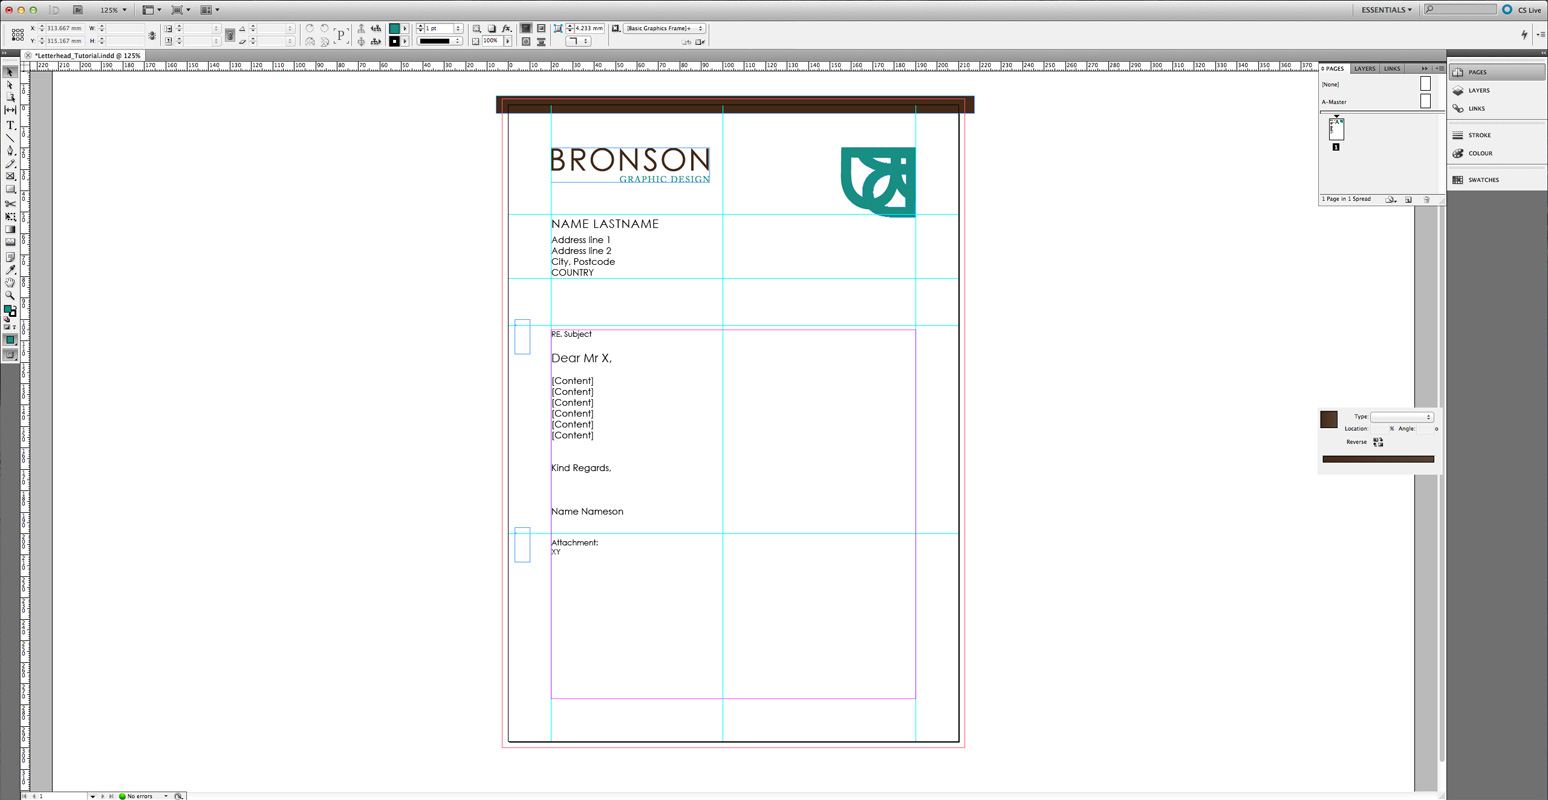 Letterhead Layouts, Arrangements of Identity Materials